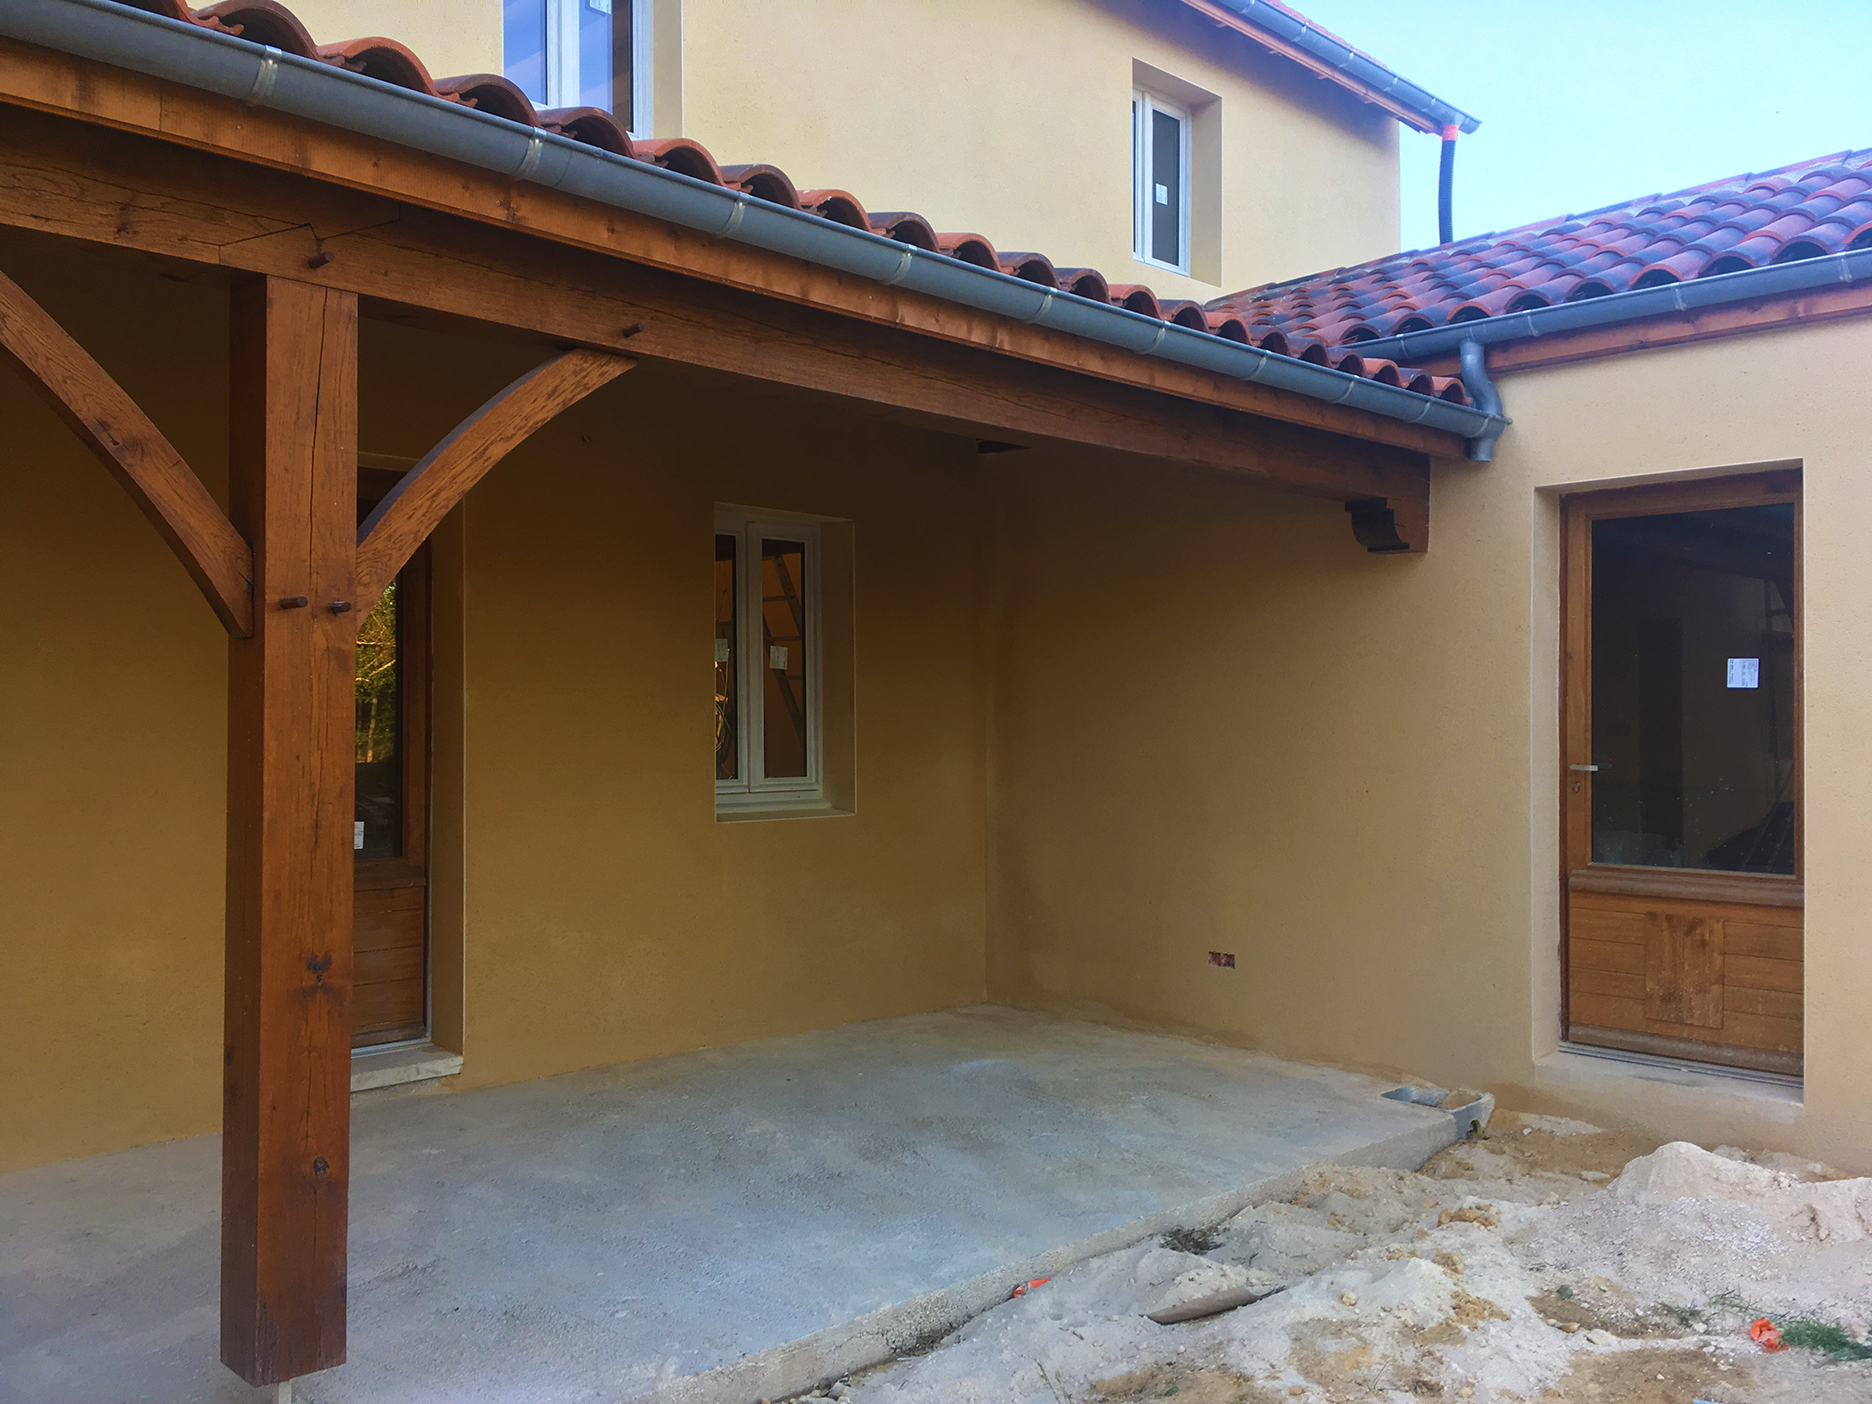 Porch with stucco